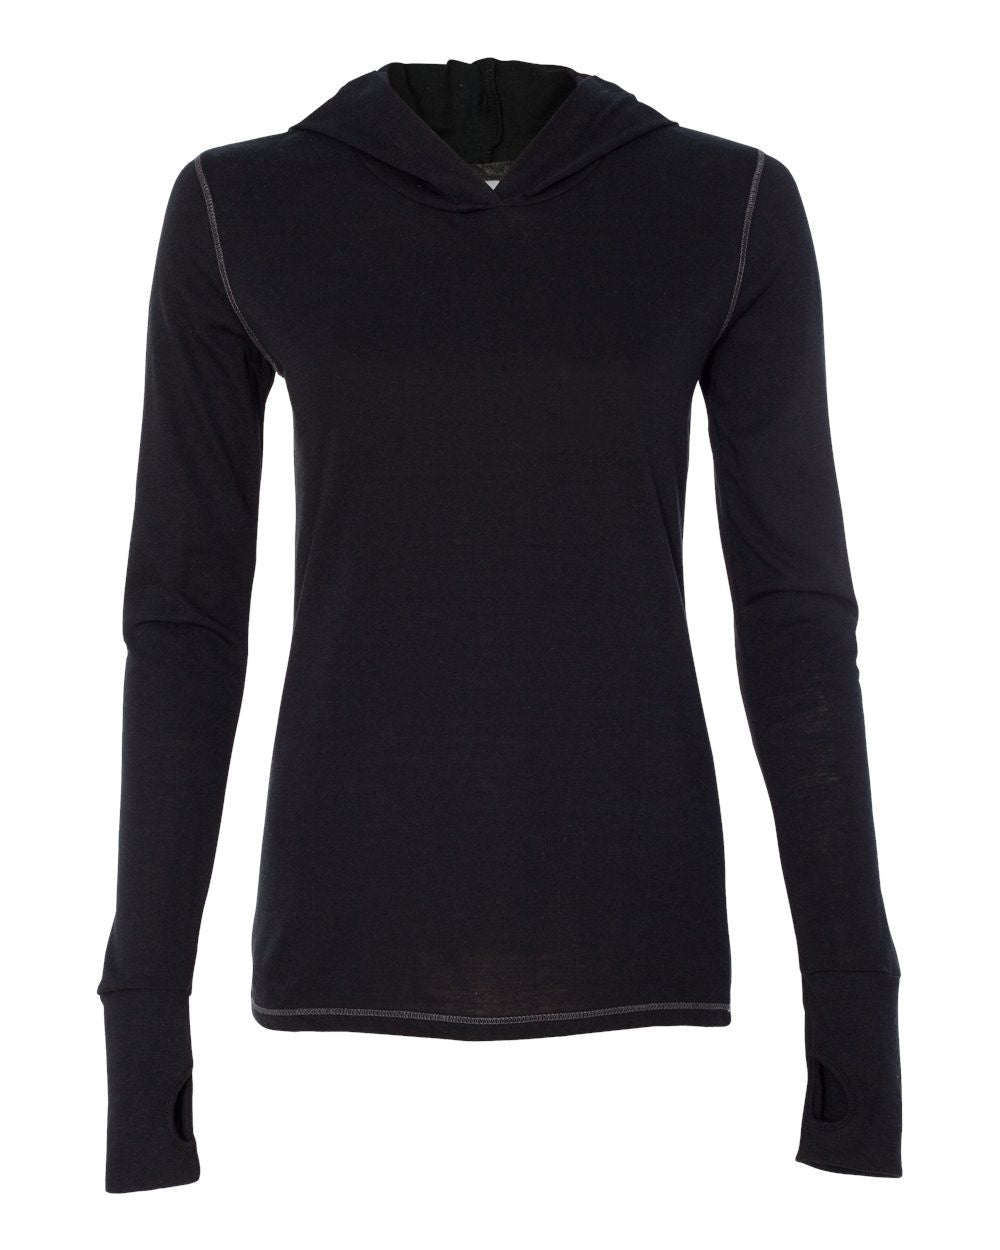 Long Sleeve Hooded Pullover by All Sport